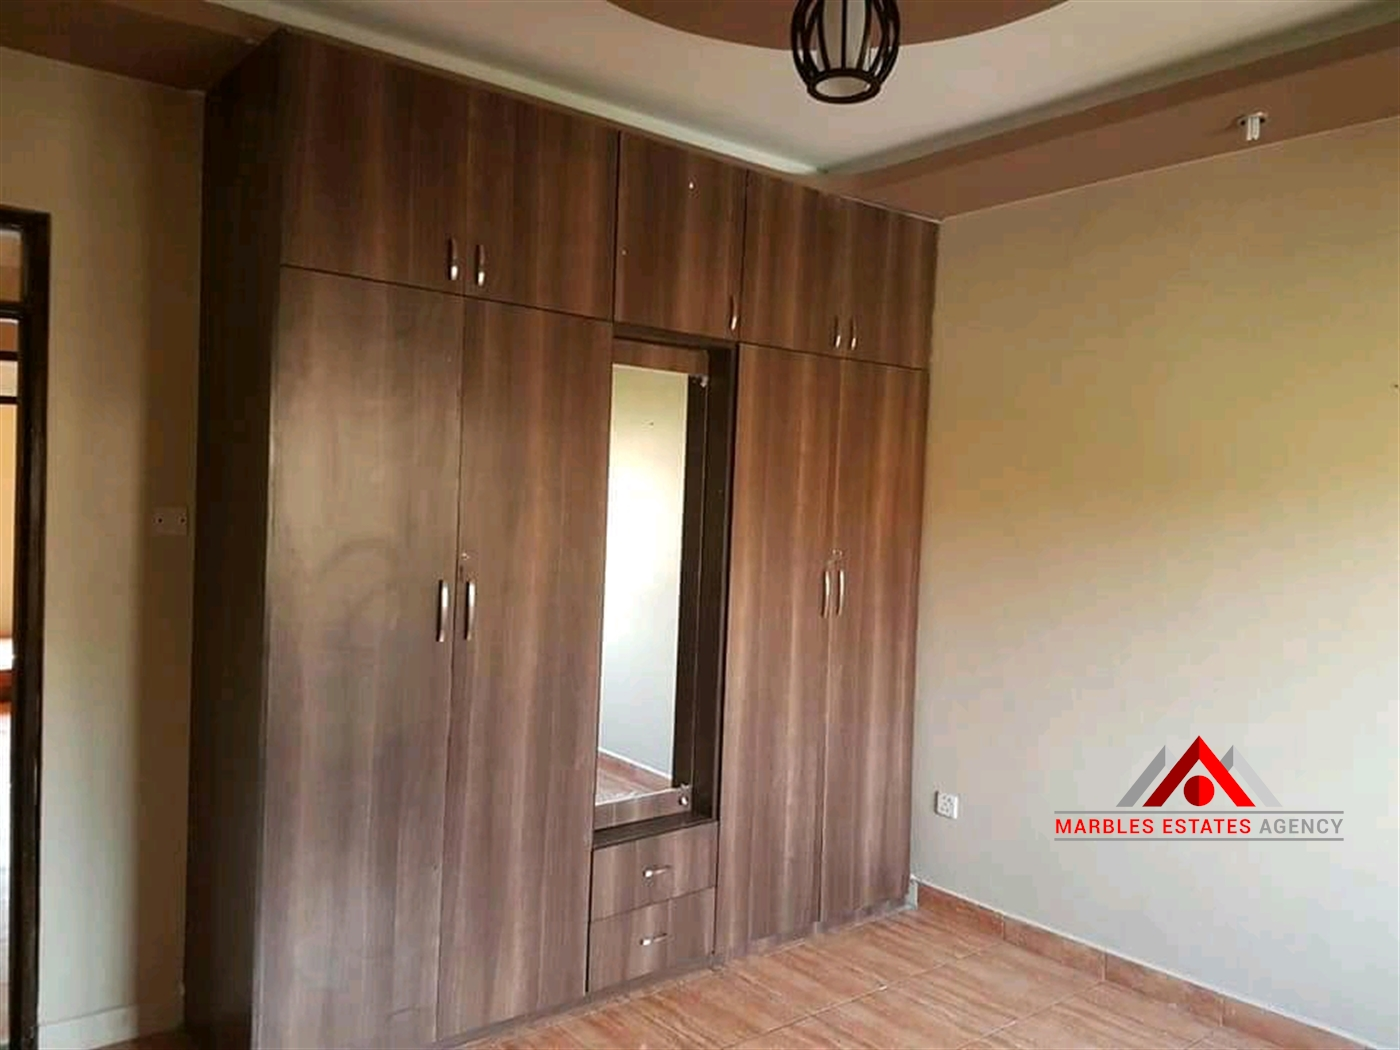 Town House for rent in Naguru Kampala